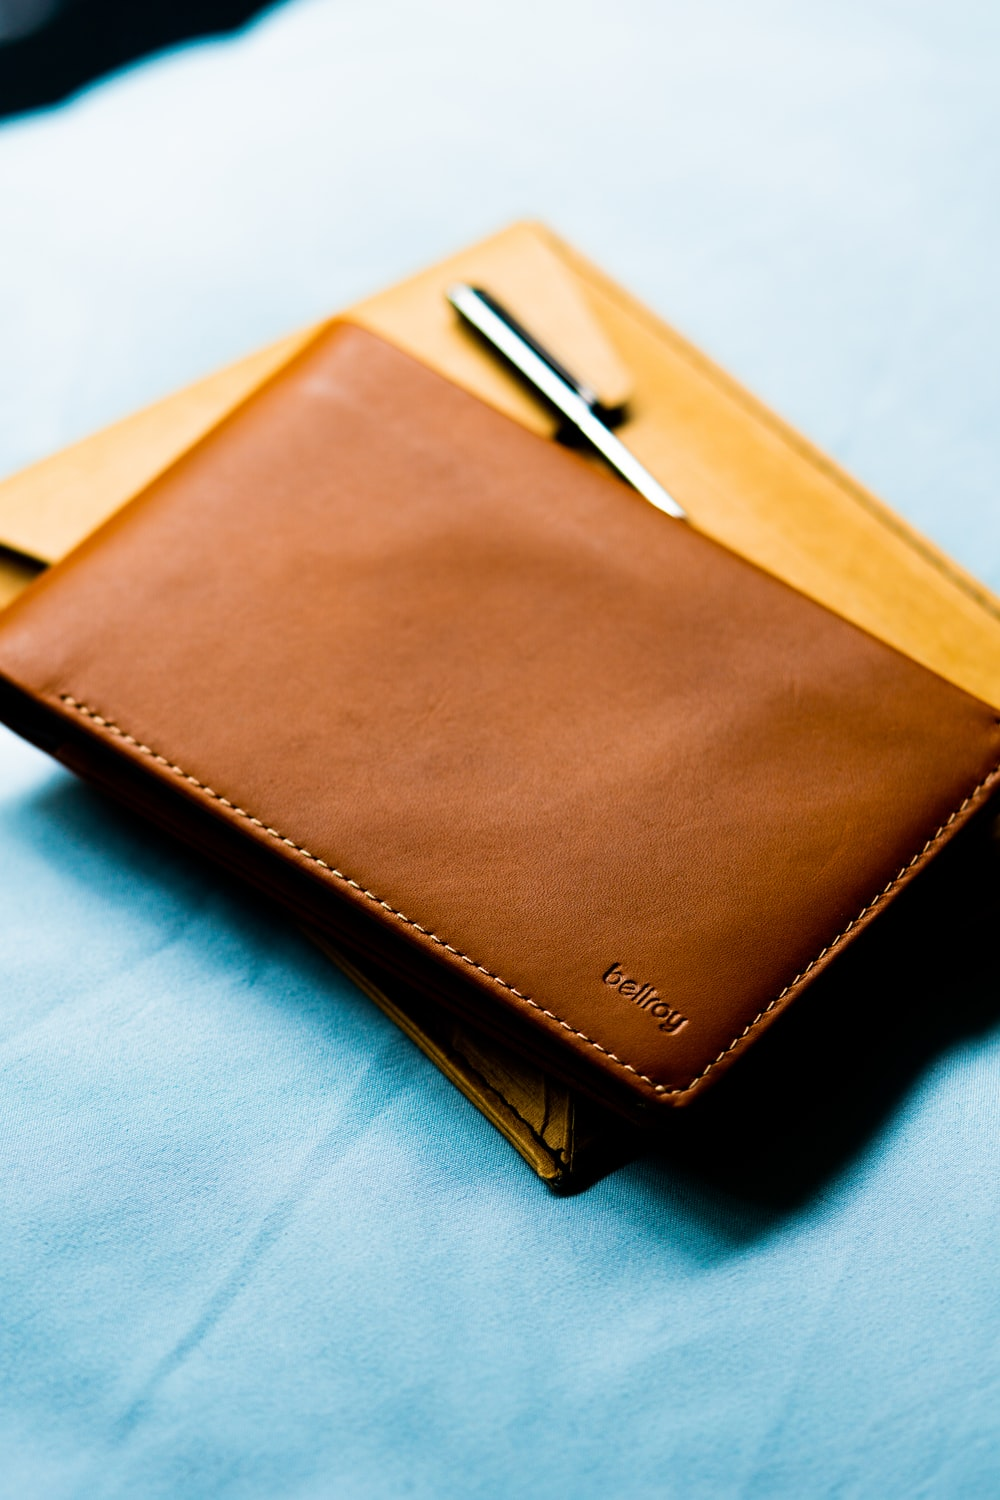 brown leather wallet on white textile